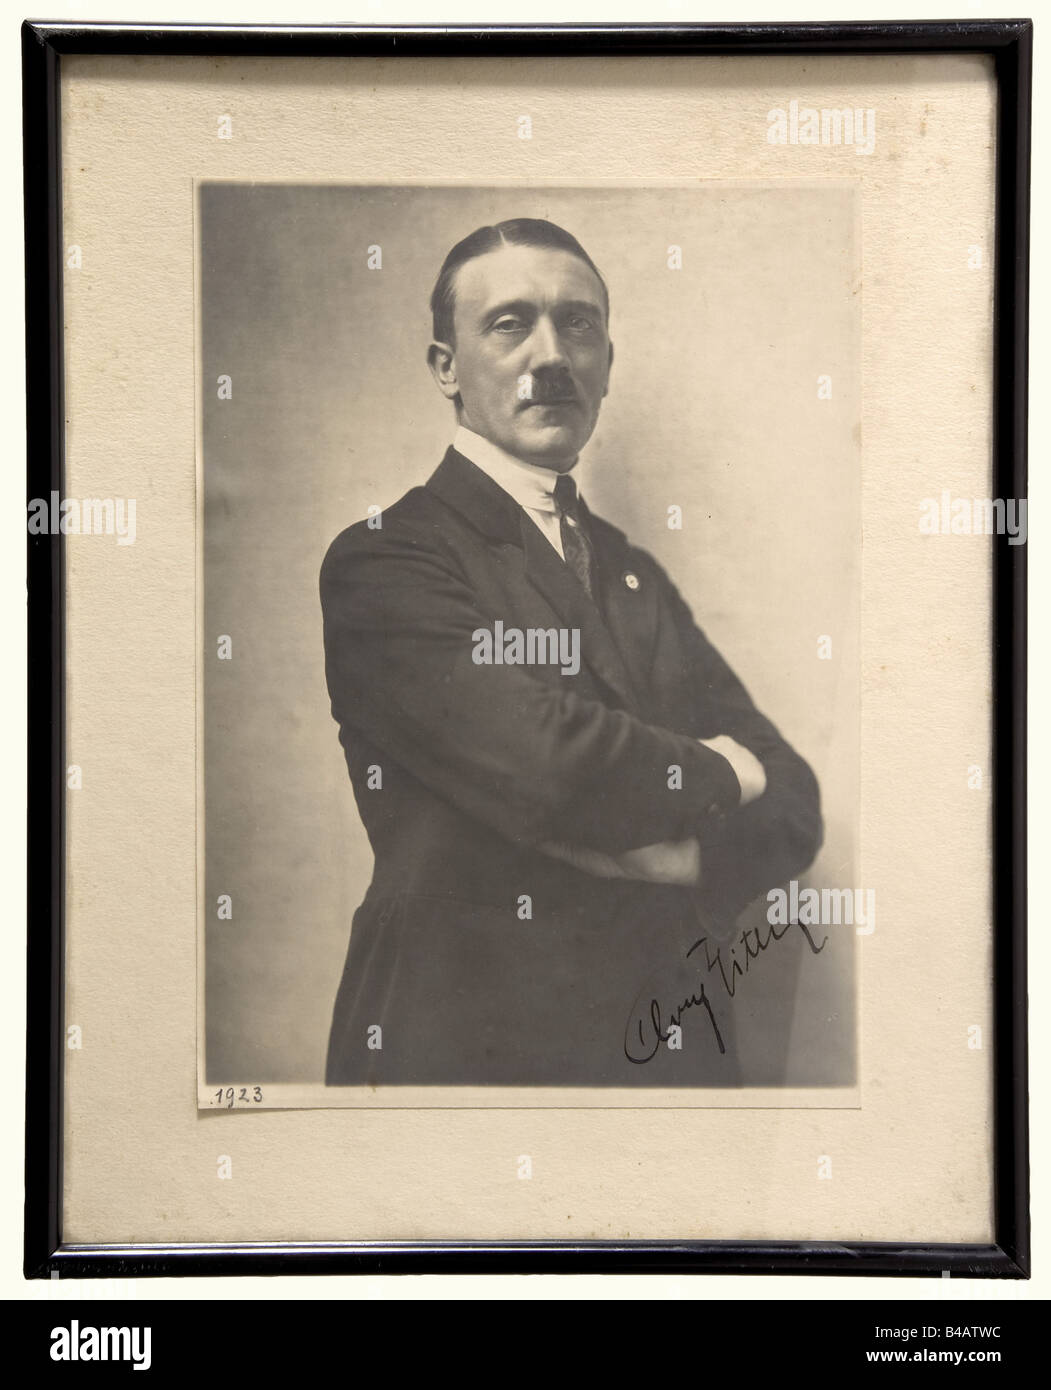 Adolf Hitler - a very early ink autograph, on a portait photograph. Large size photo (16 x 23 cm) by Hoffmann of - Stock Image